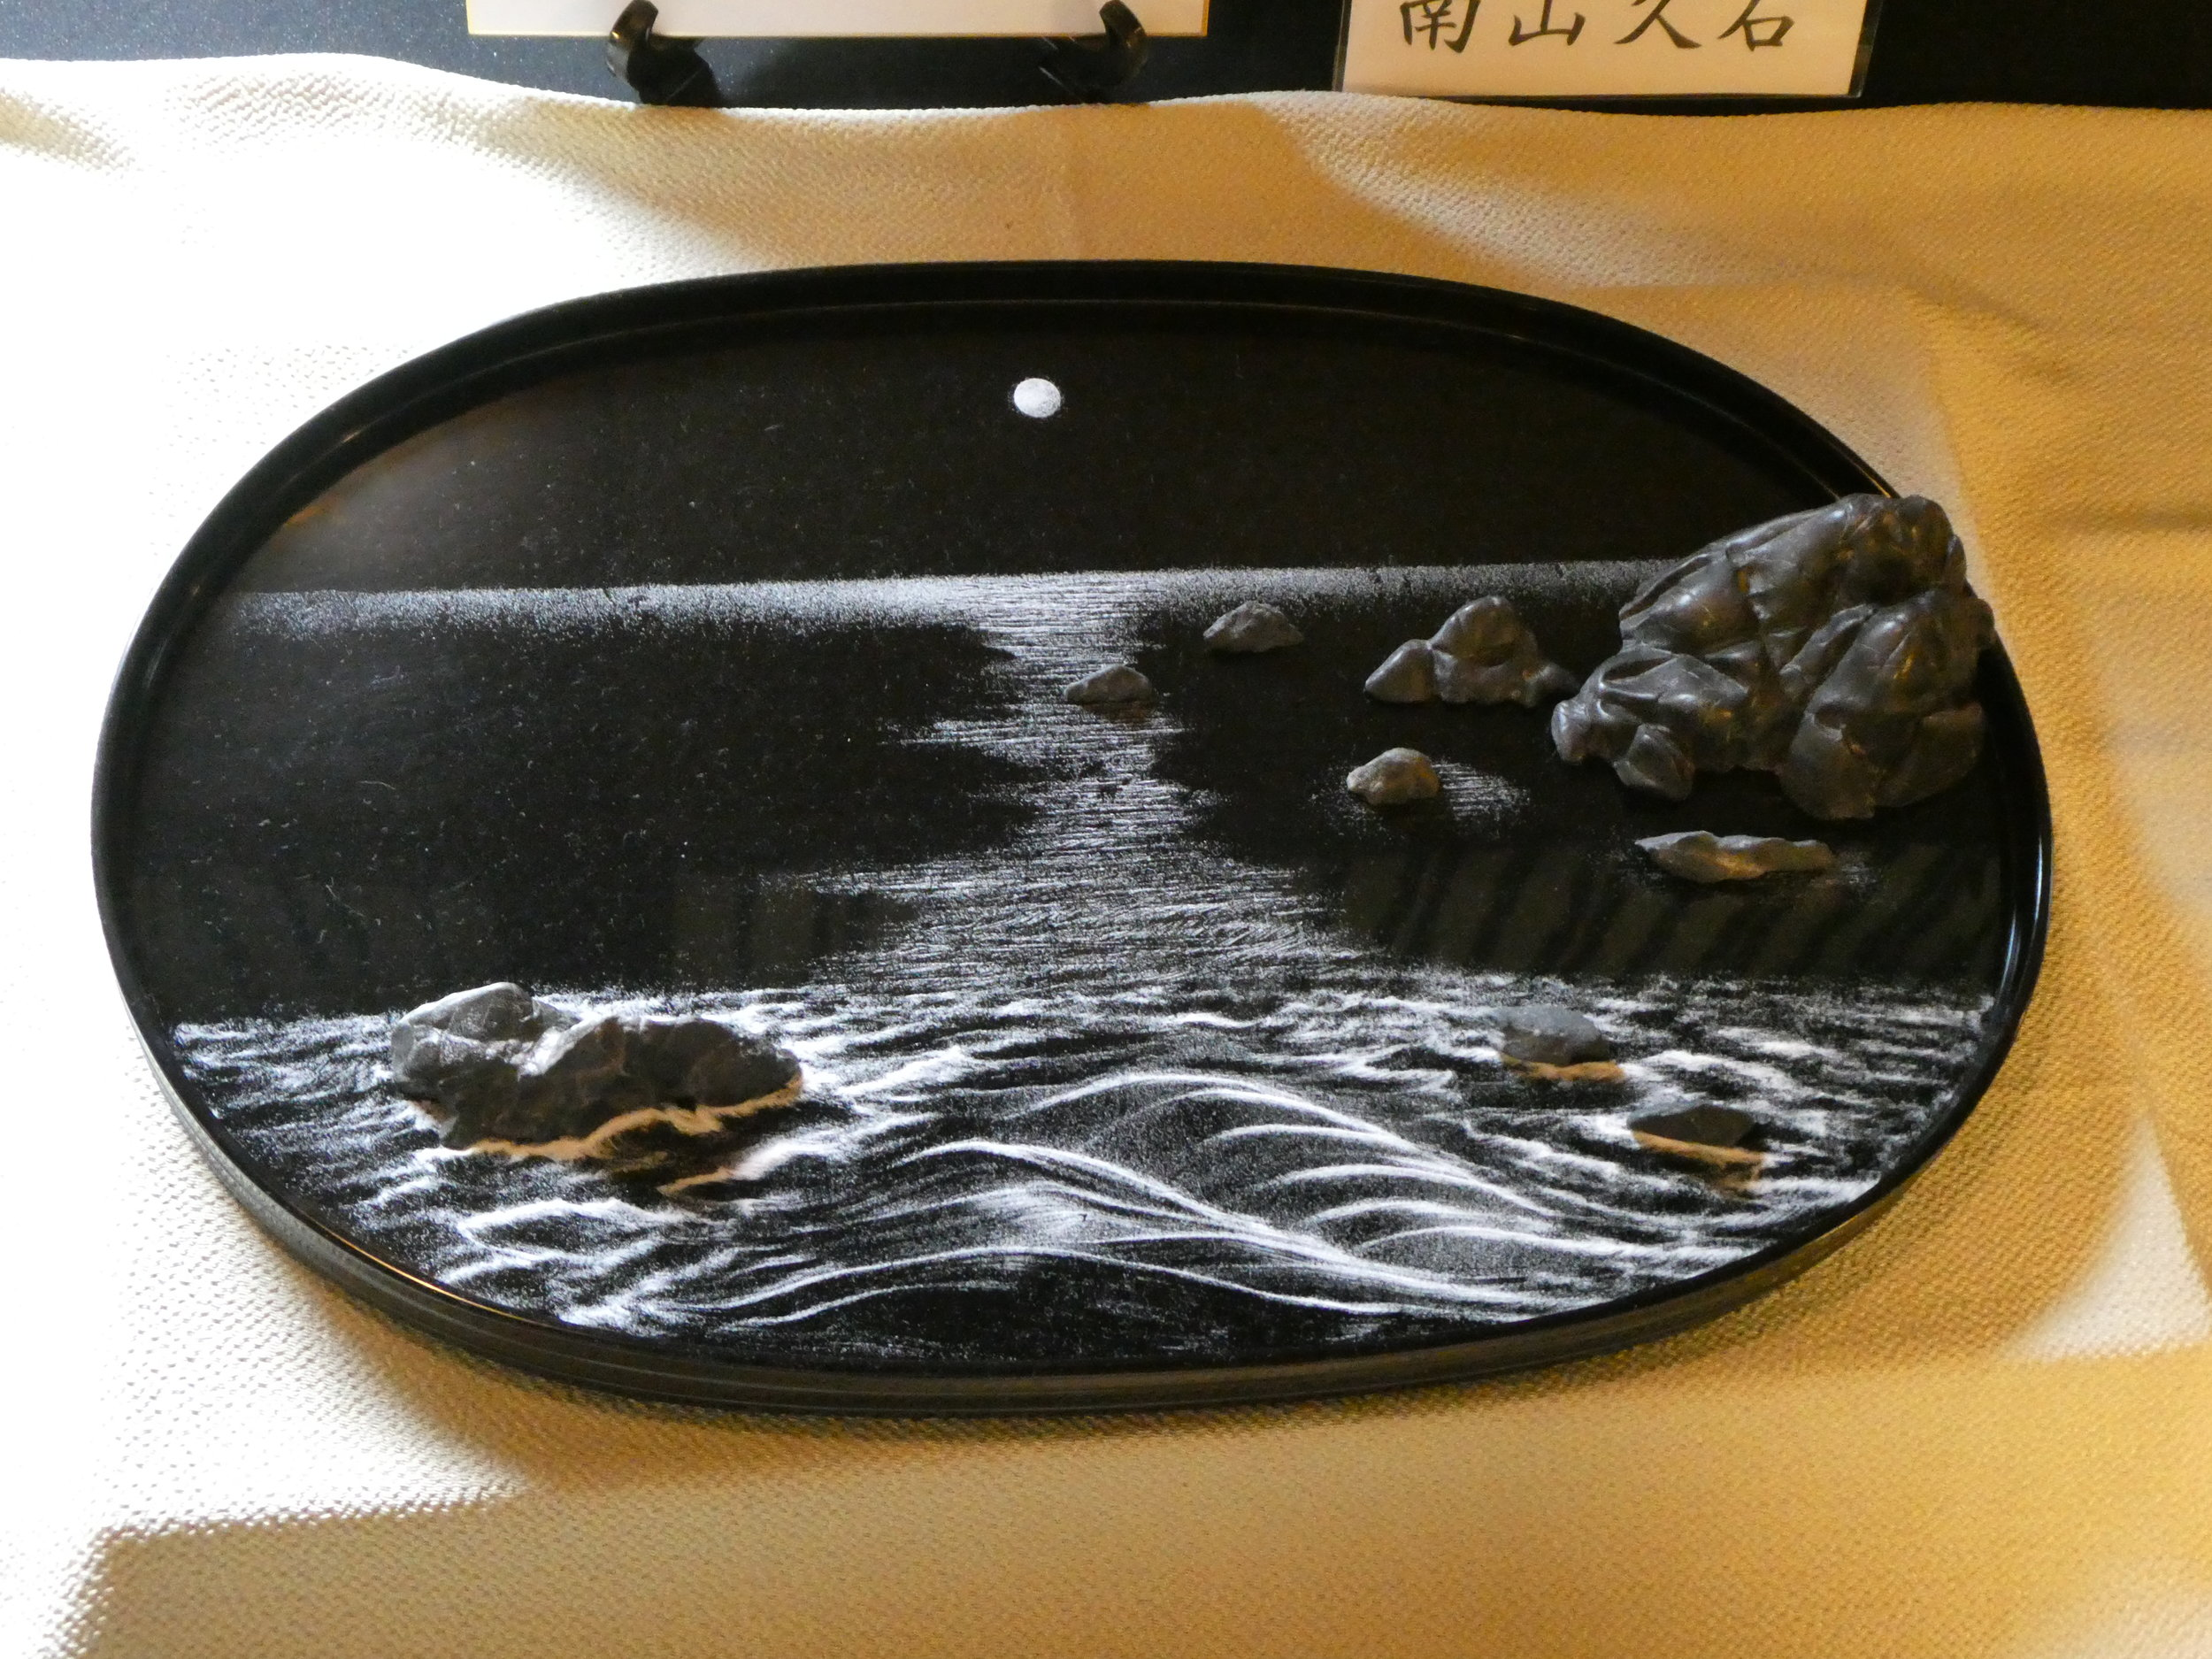 An example of Bonseki, the ancient Japanese art of creating miniature landscapes on black lacquer trays using only white sand, pebbles, and small rocks.